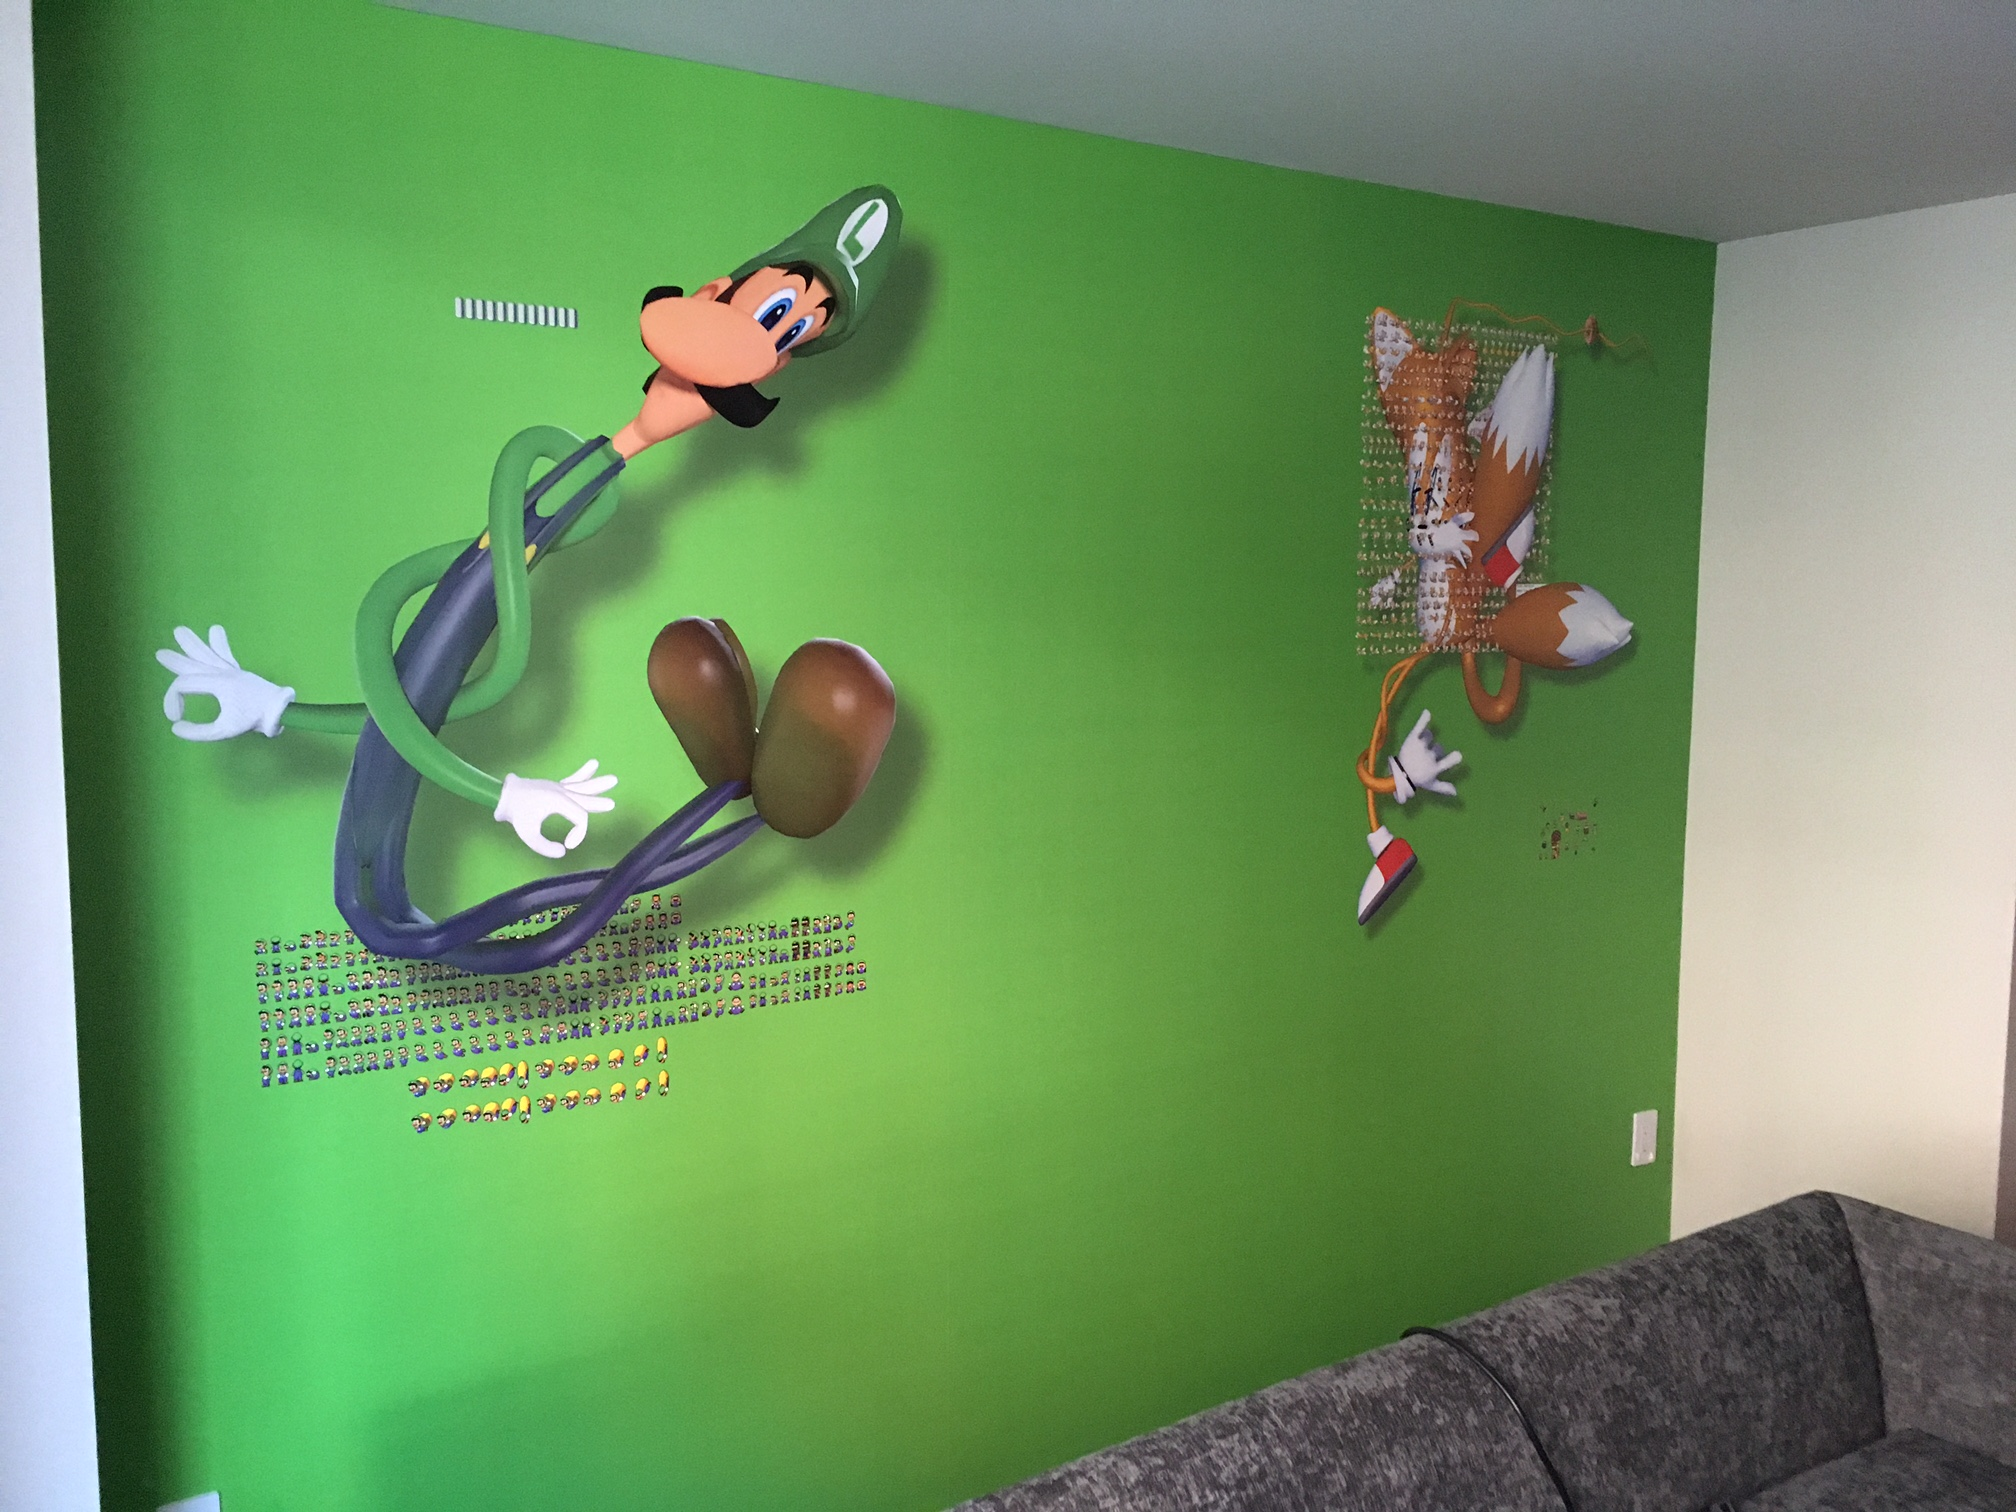 Custom Decals Wall Murals Vinyl Lettering Dynamark Graphics - Superb vinyl graphics